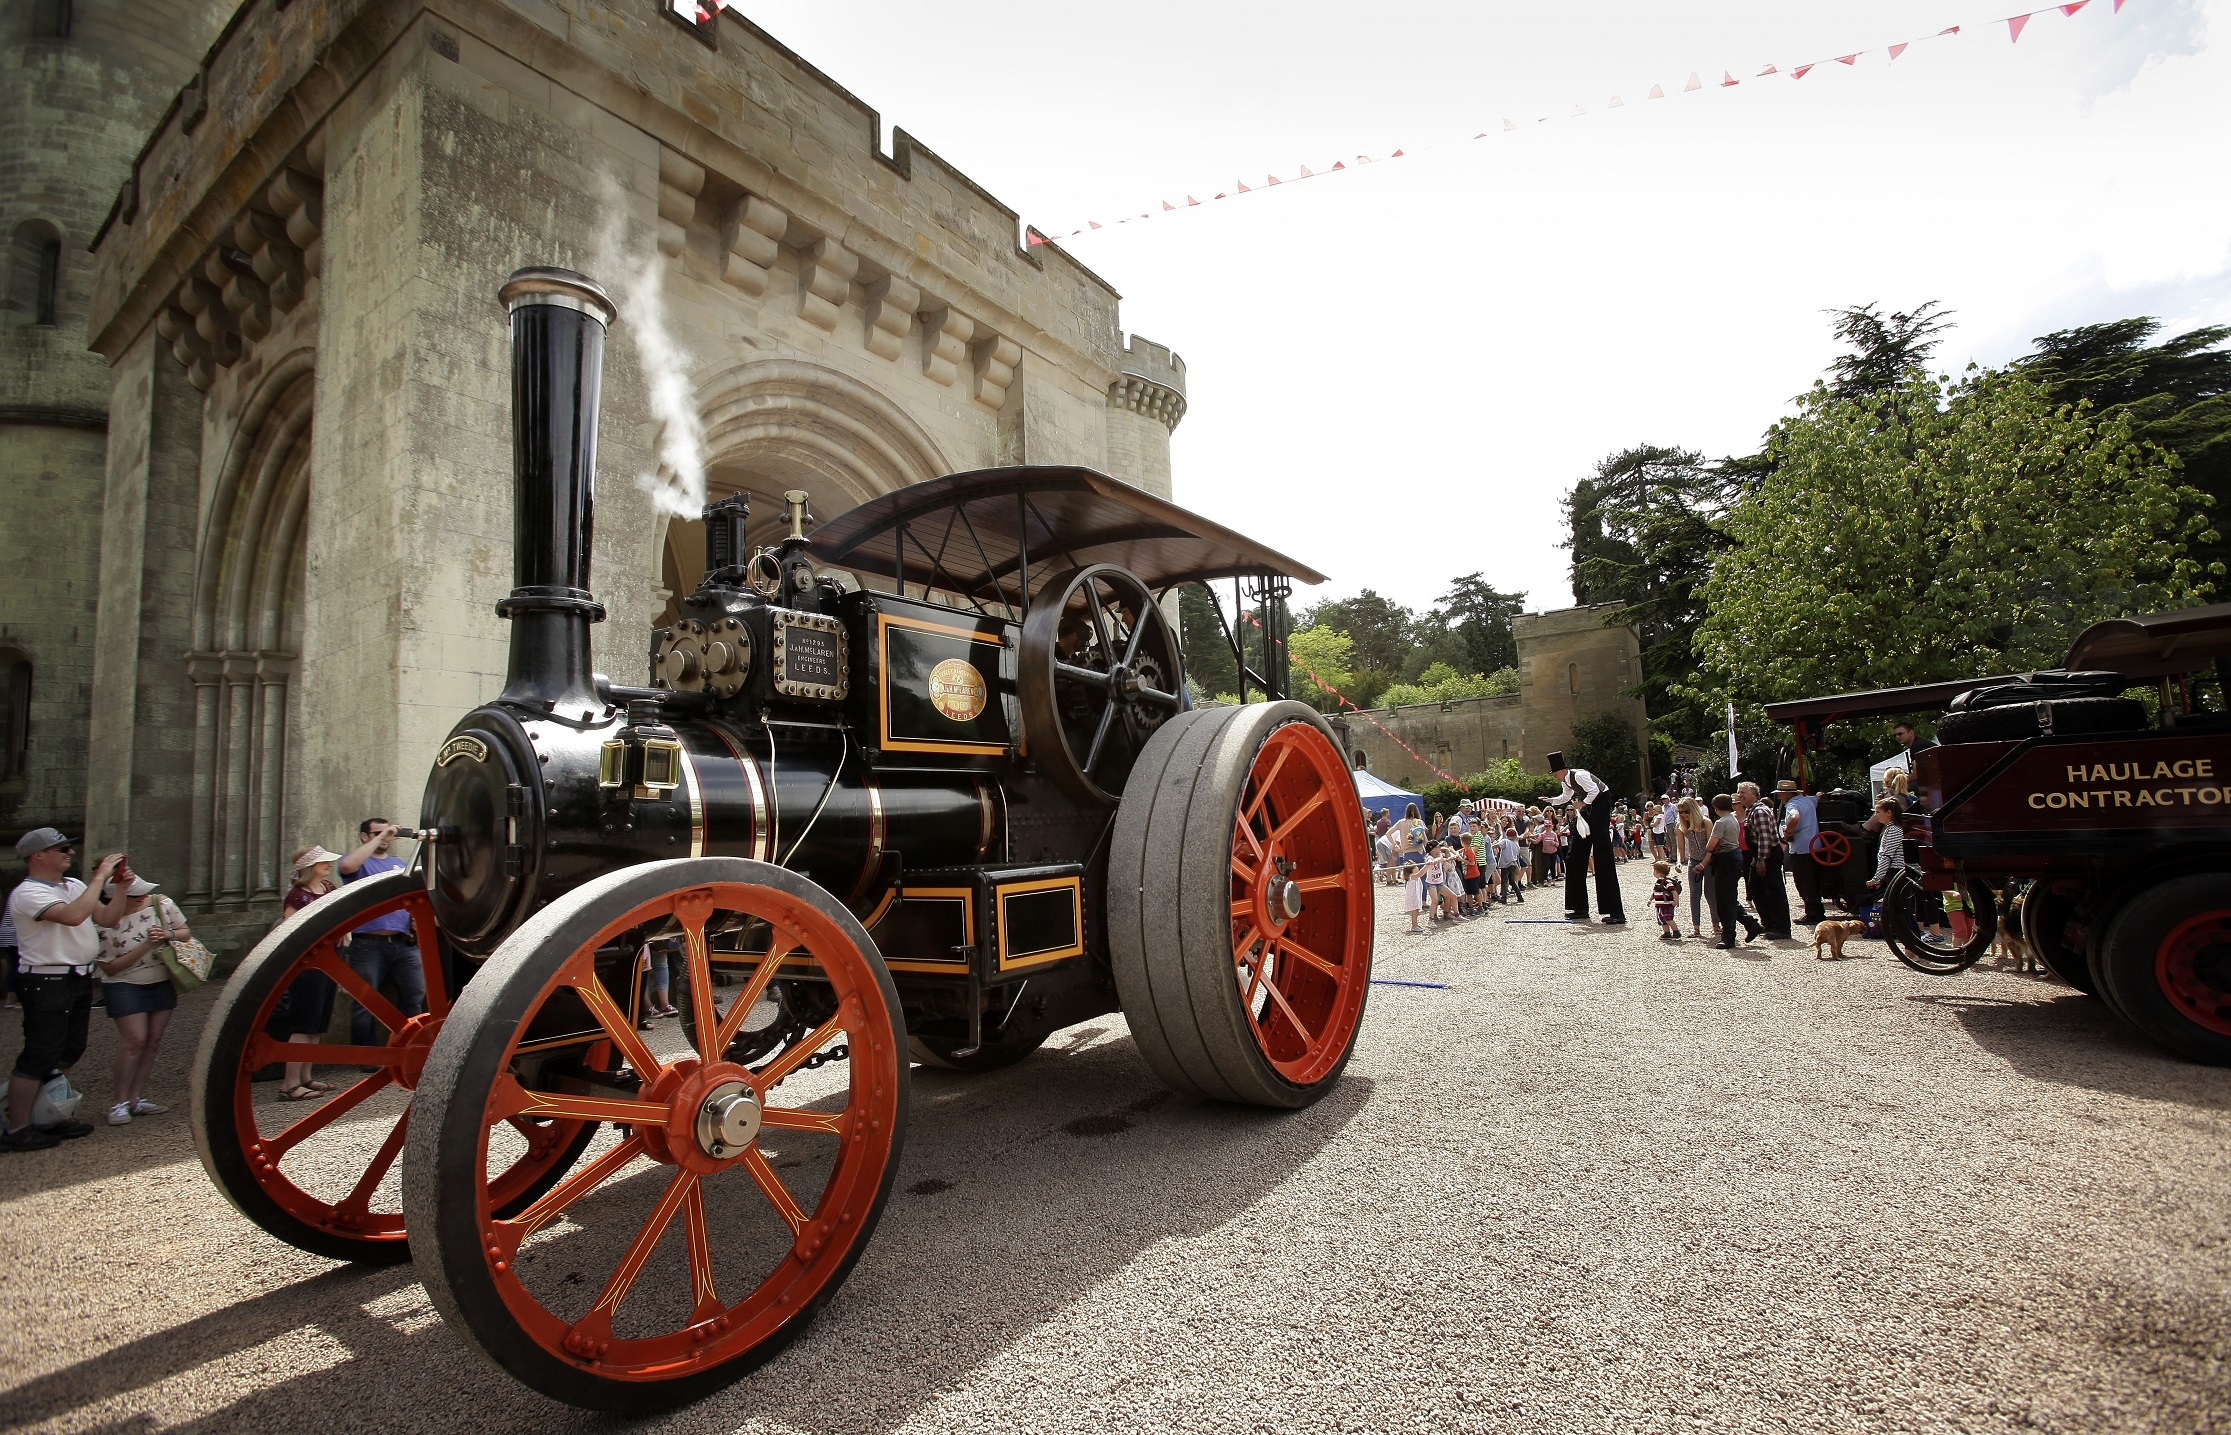 NOSTALGIC: Full steam ahead to the past at Eastnor Castle